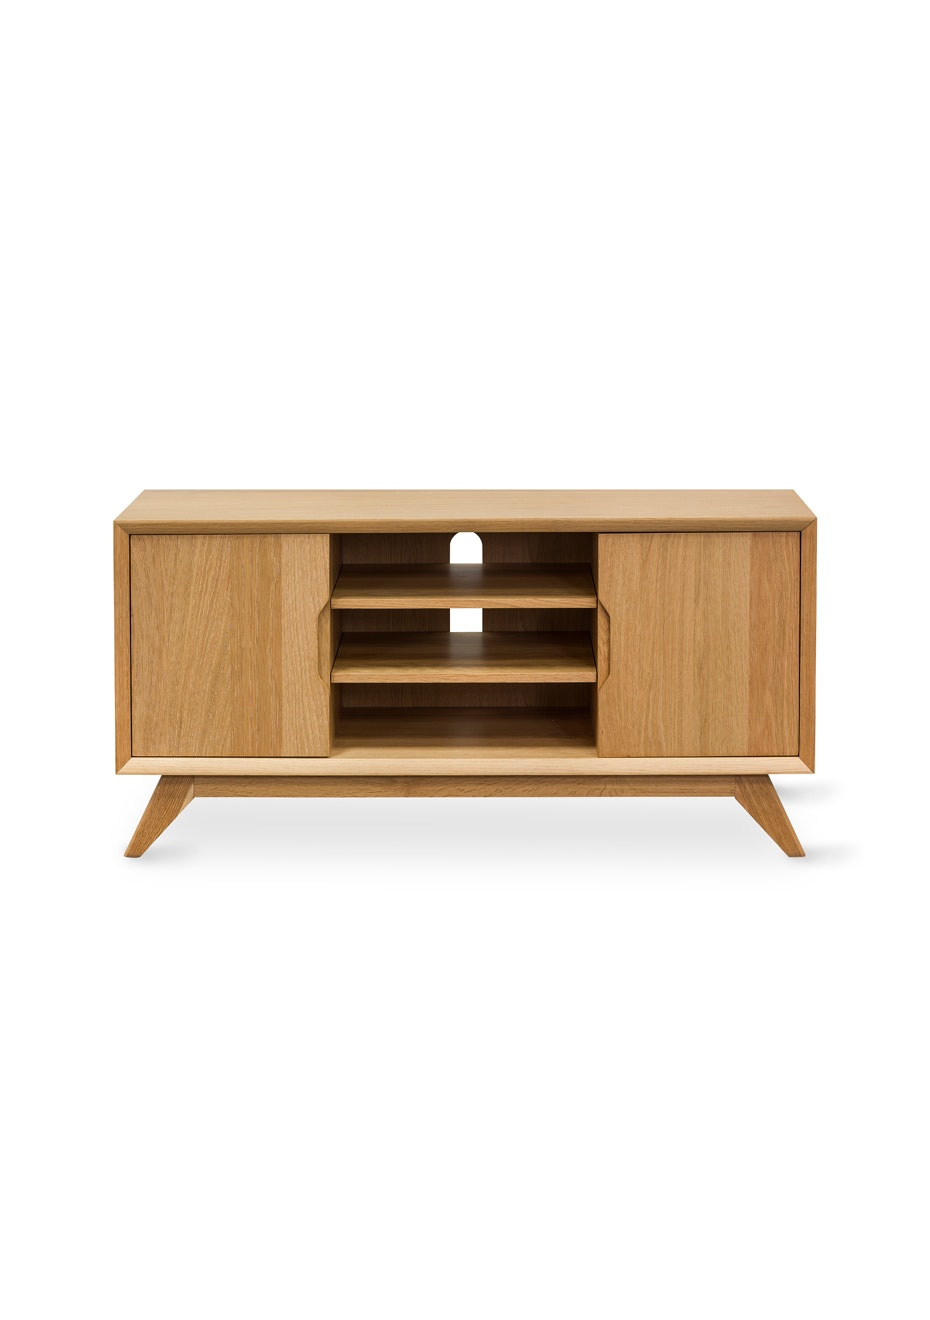 Furniture By Design - Milano Entertainment Unit- Light Oak